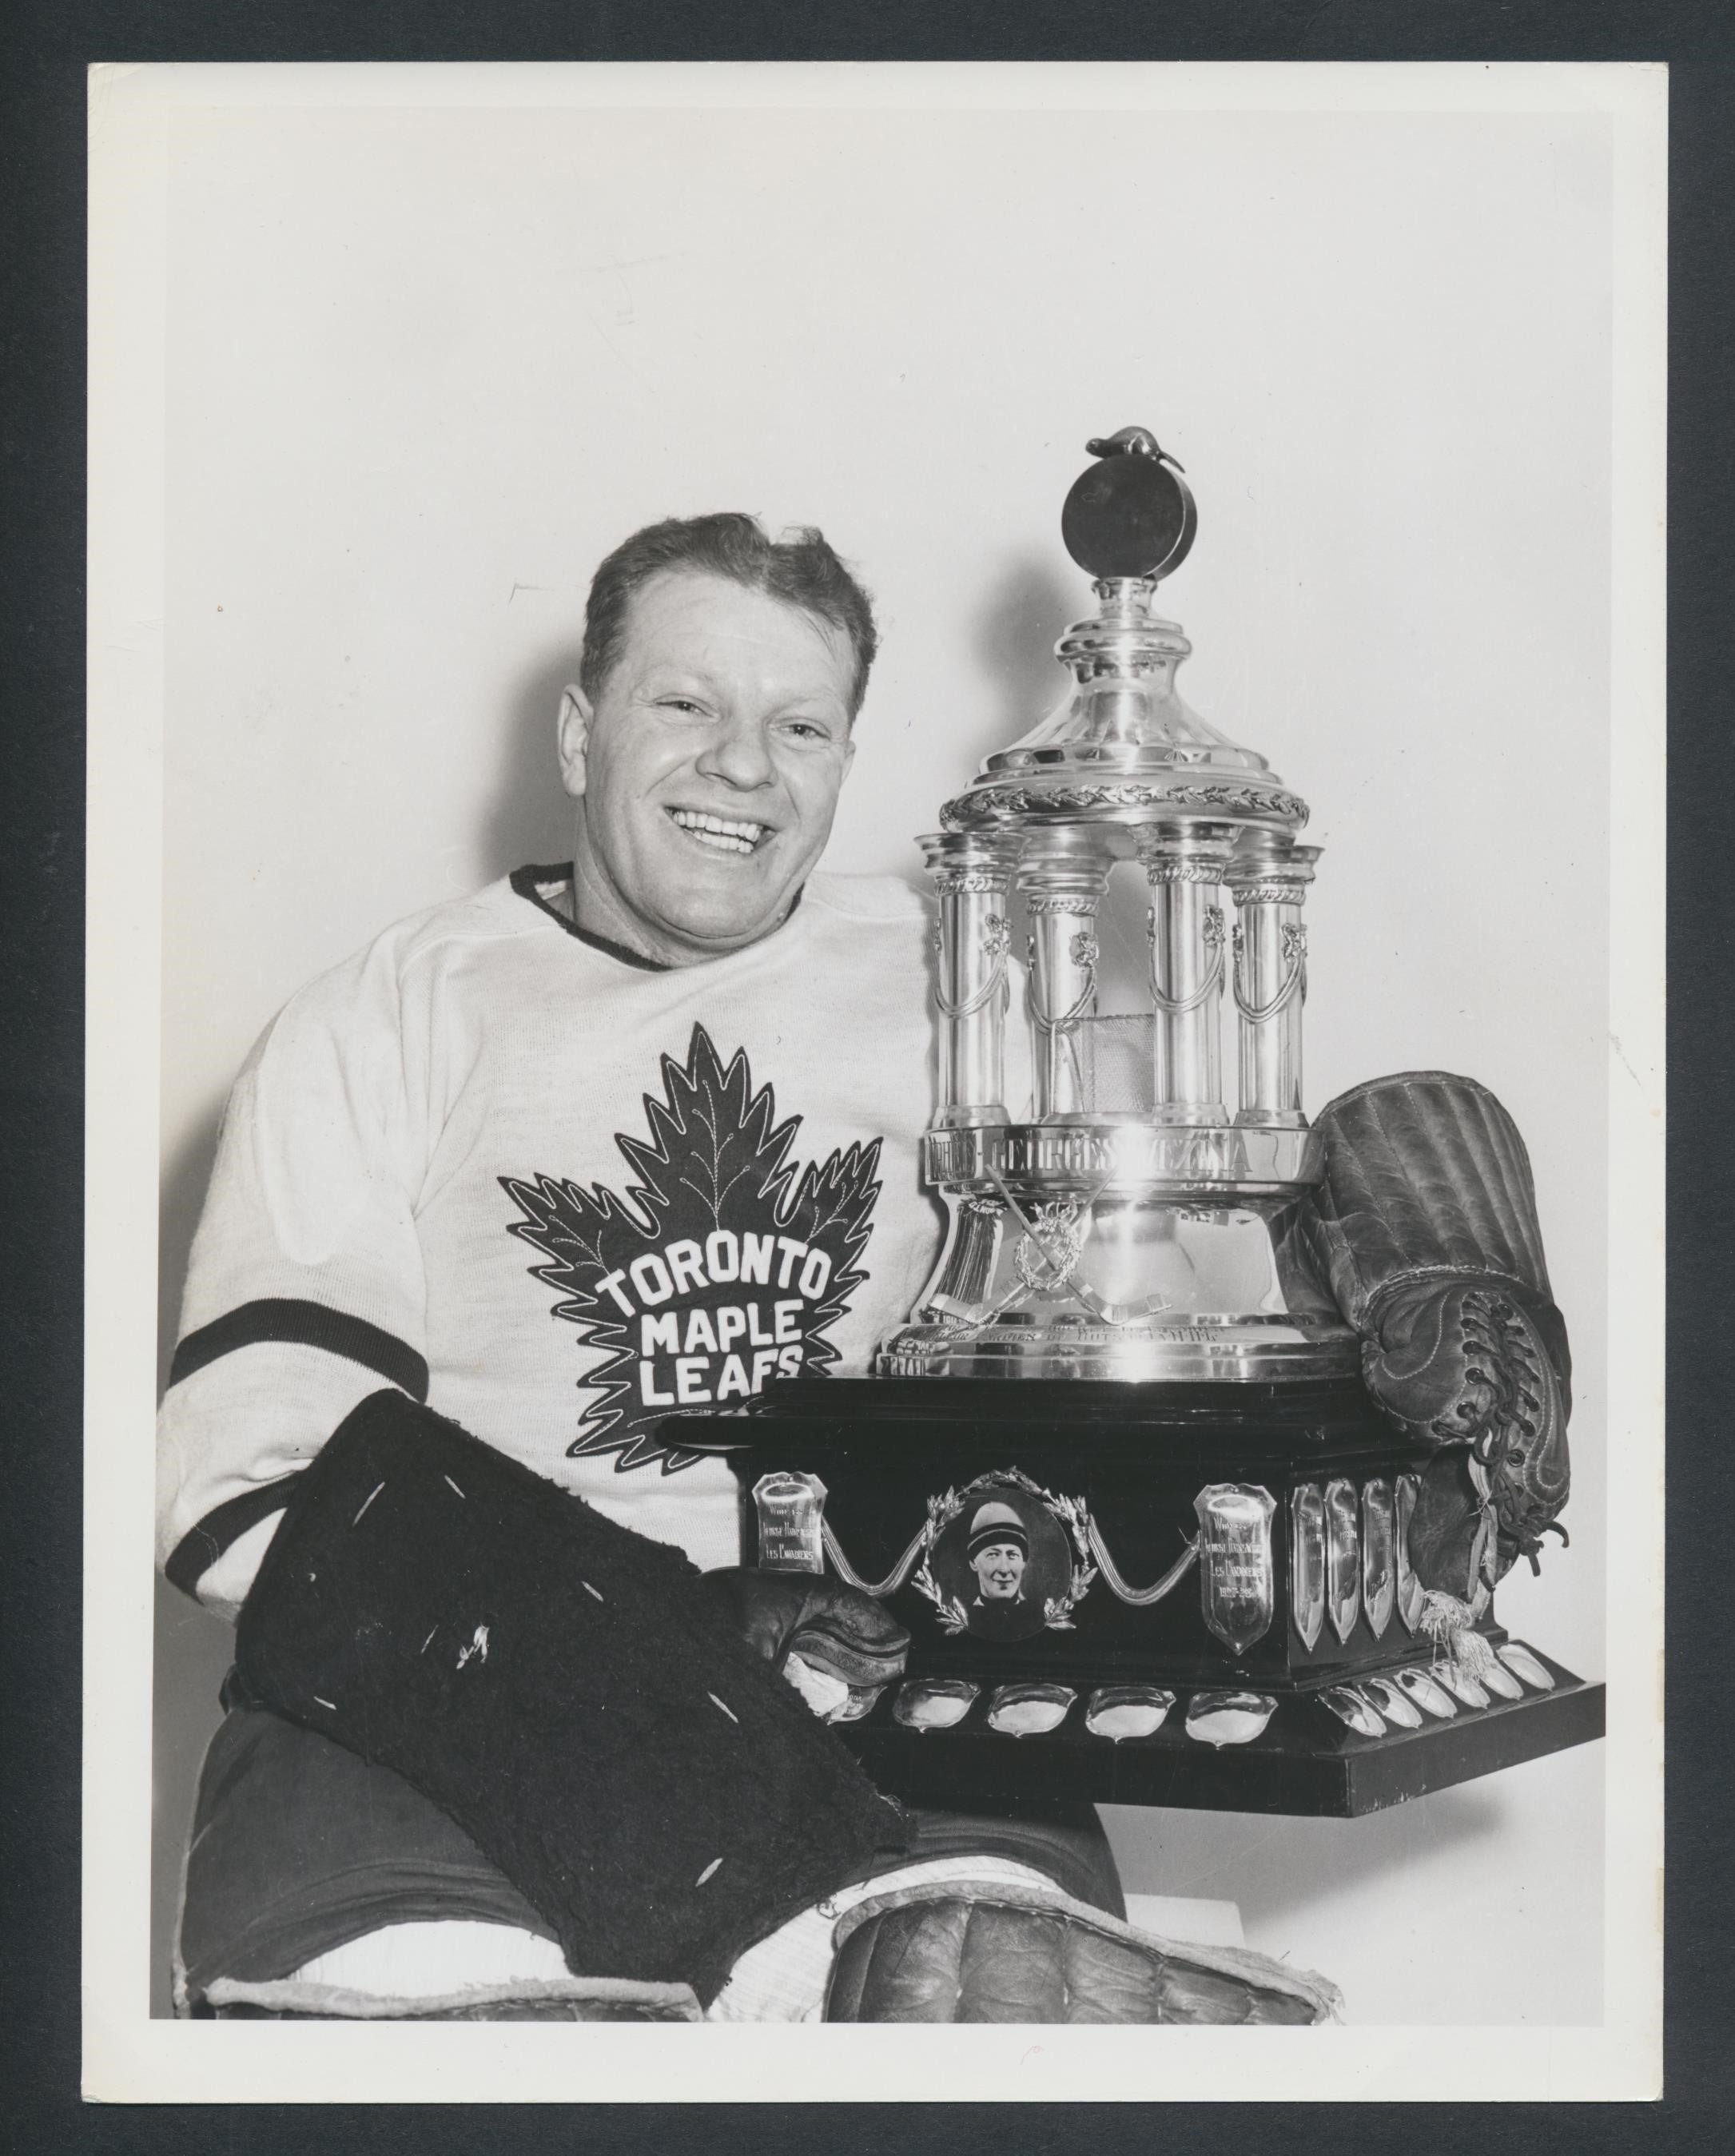 Original Turofsky Turk Broda -Toronto Maple Leafs Press Photo 1948 Vezina Trophy